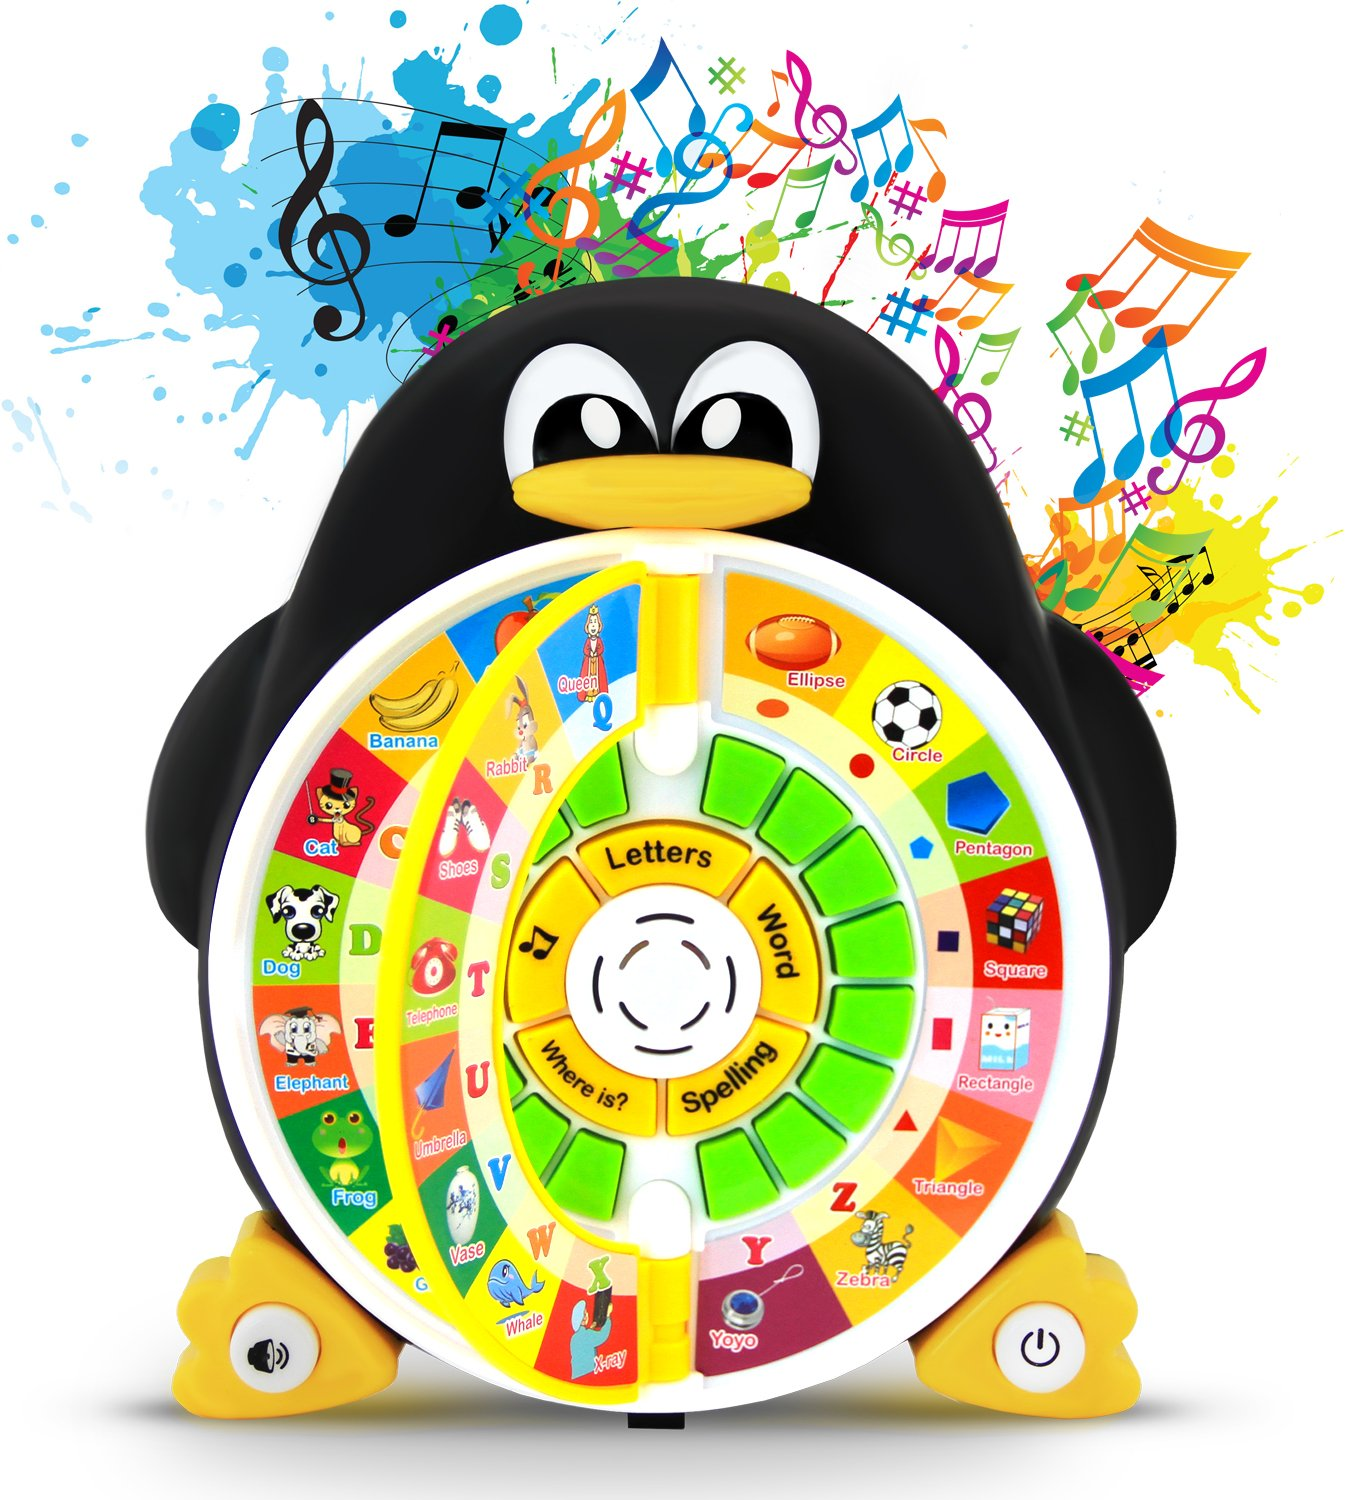 """Boxiki kids Penguin Power ABC Learning Educational Toy By Learning Game Center Boosts Core Pre-Kindergarten Subject Comprehension – ABCs, Words, Spelling, Shapes, """"Where Is?"""" & Songs"""